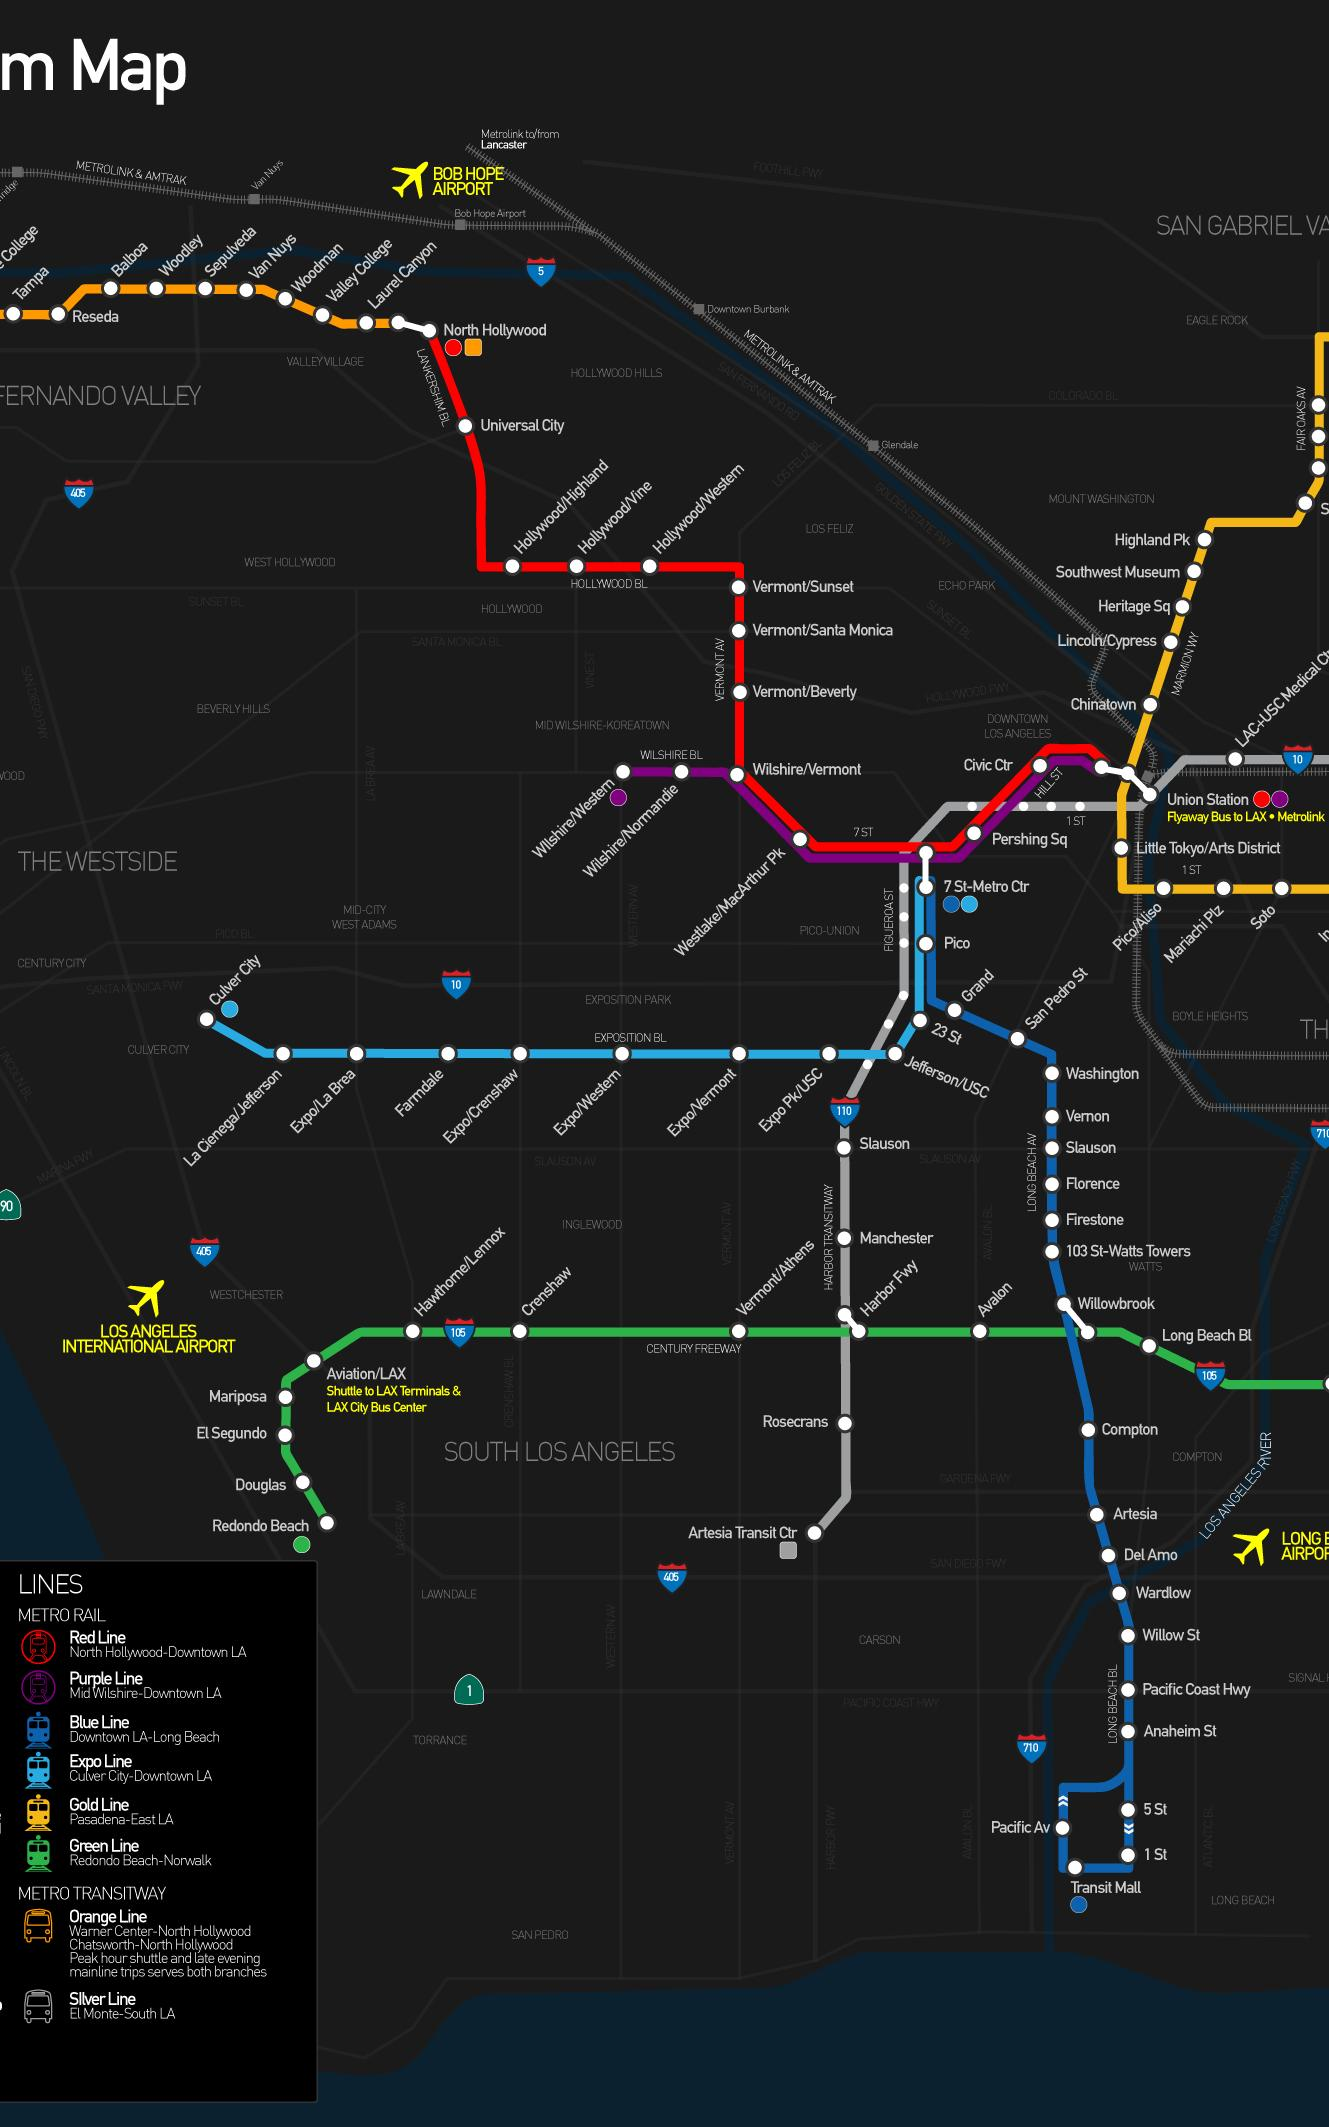 Los Angeles Metro Rail Map poster